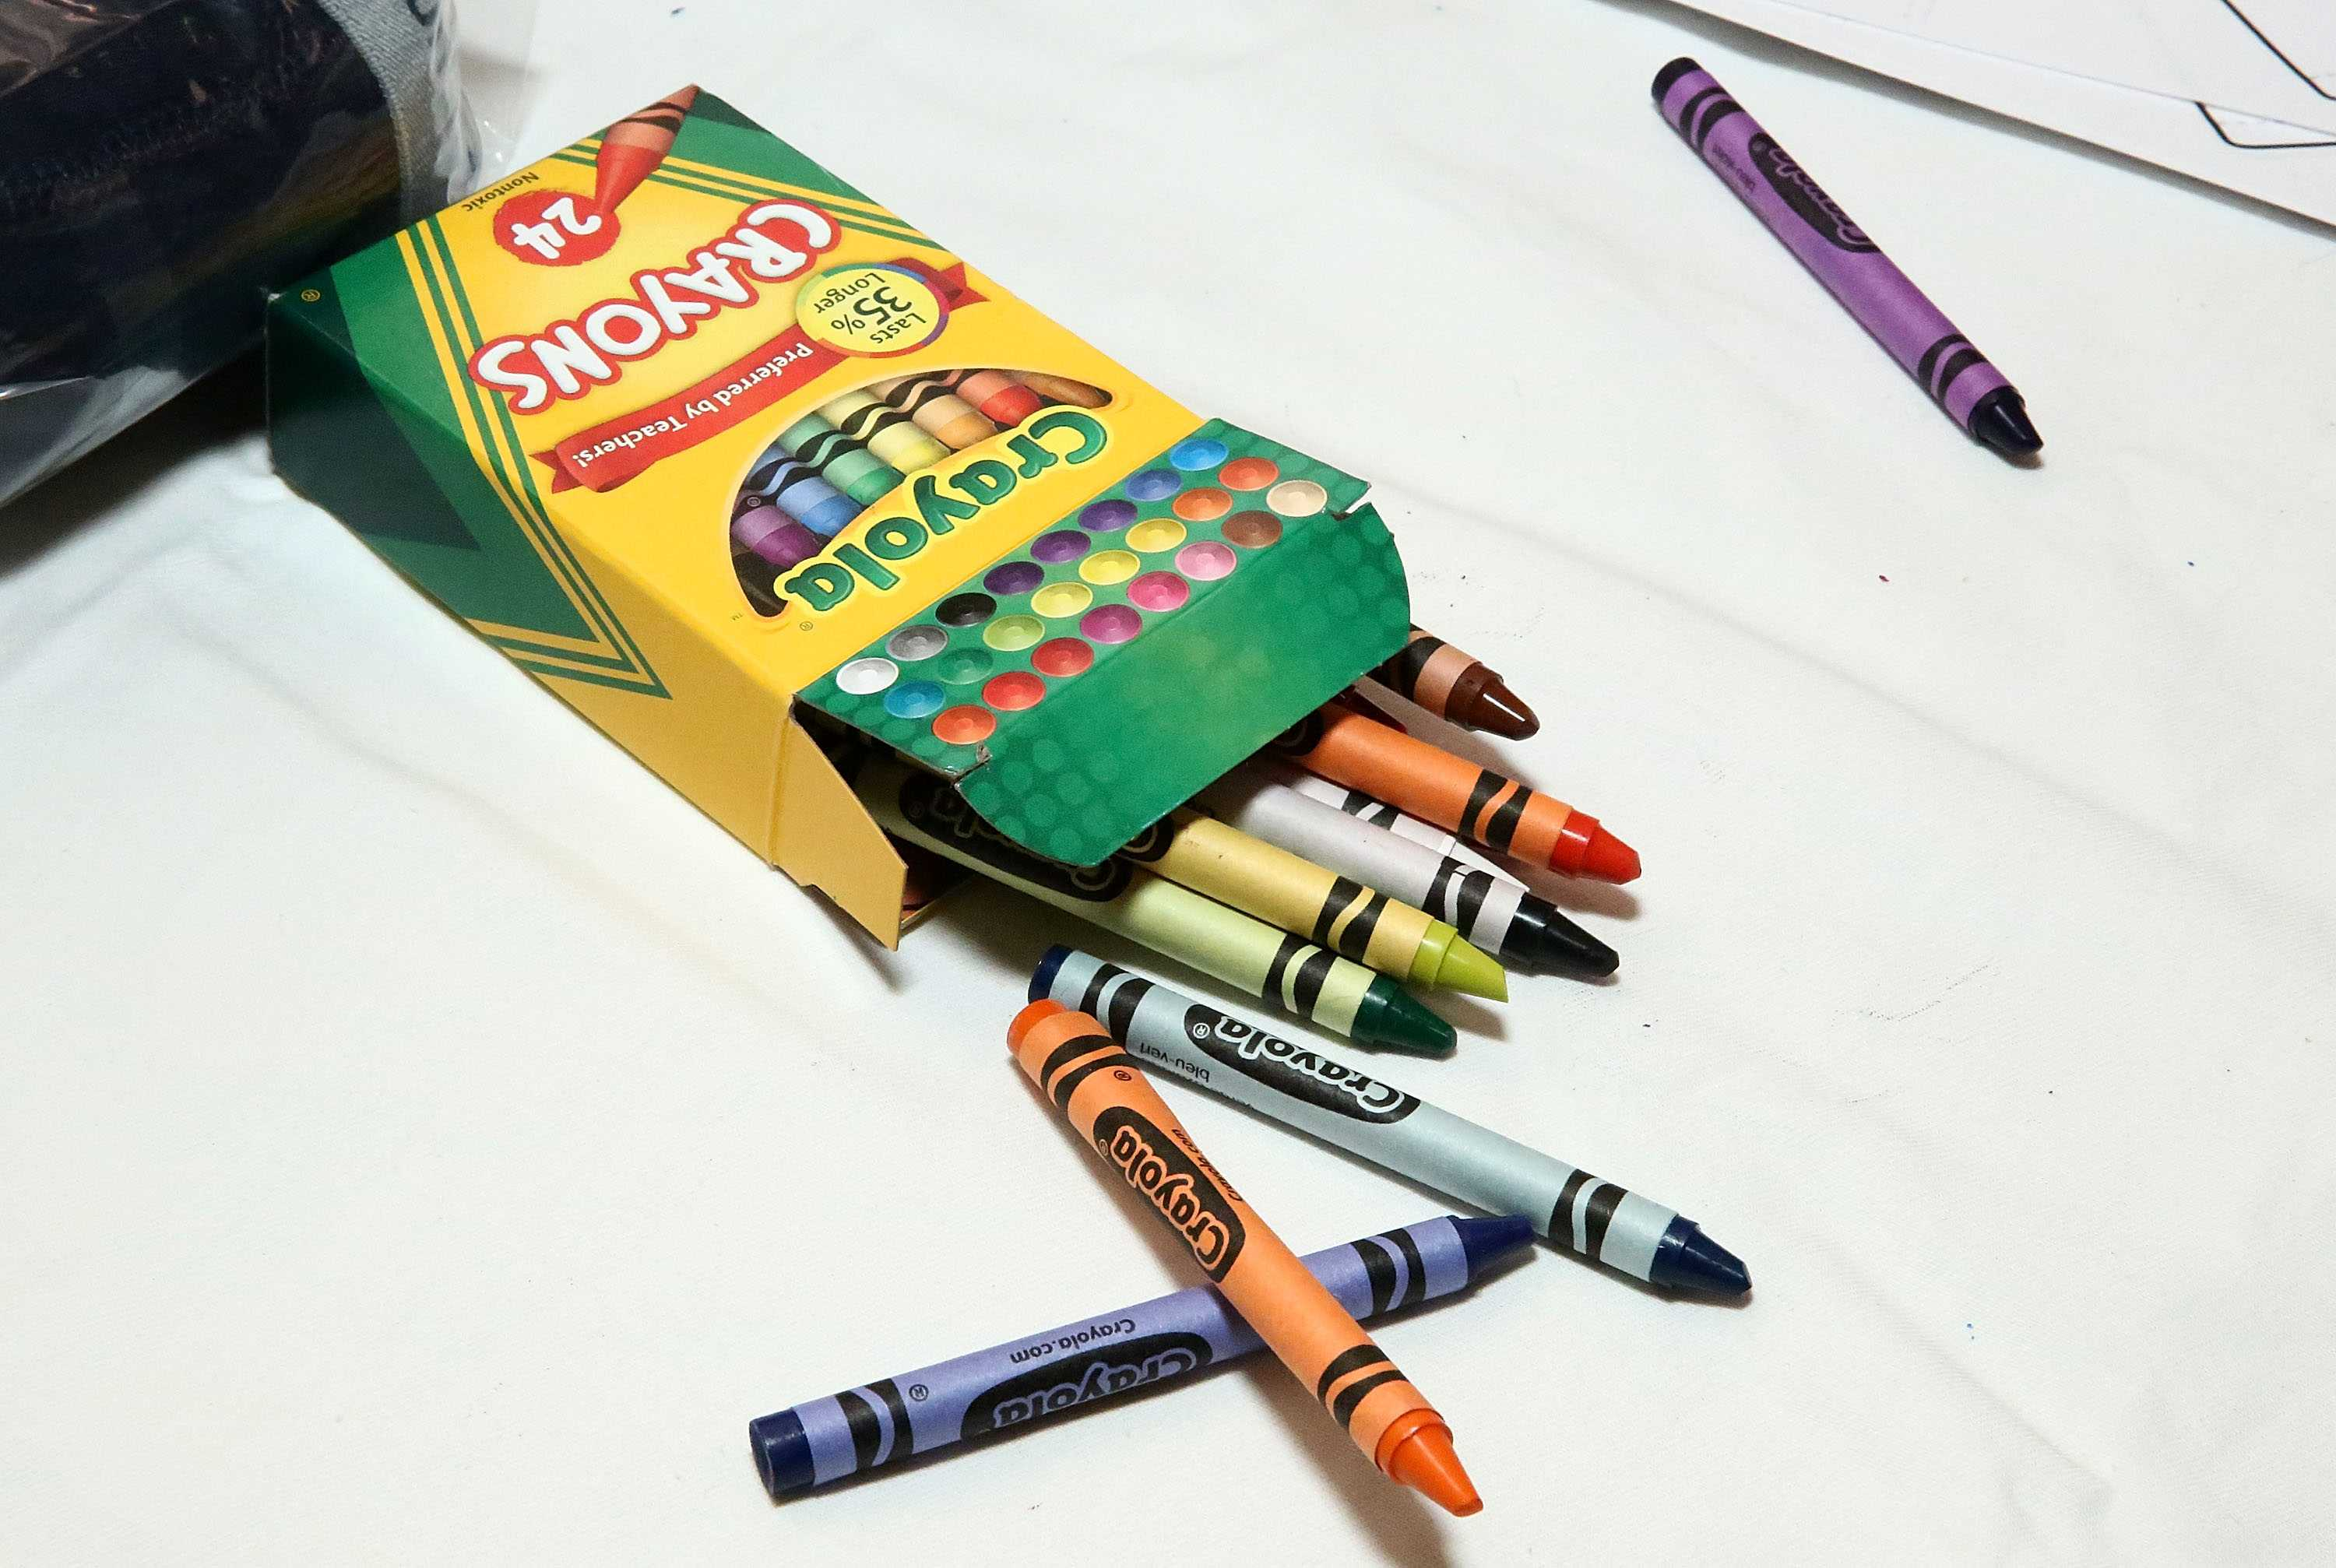 Crayola gives two clues about Dandelion crayon replacement